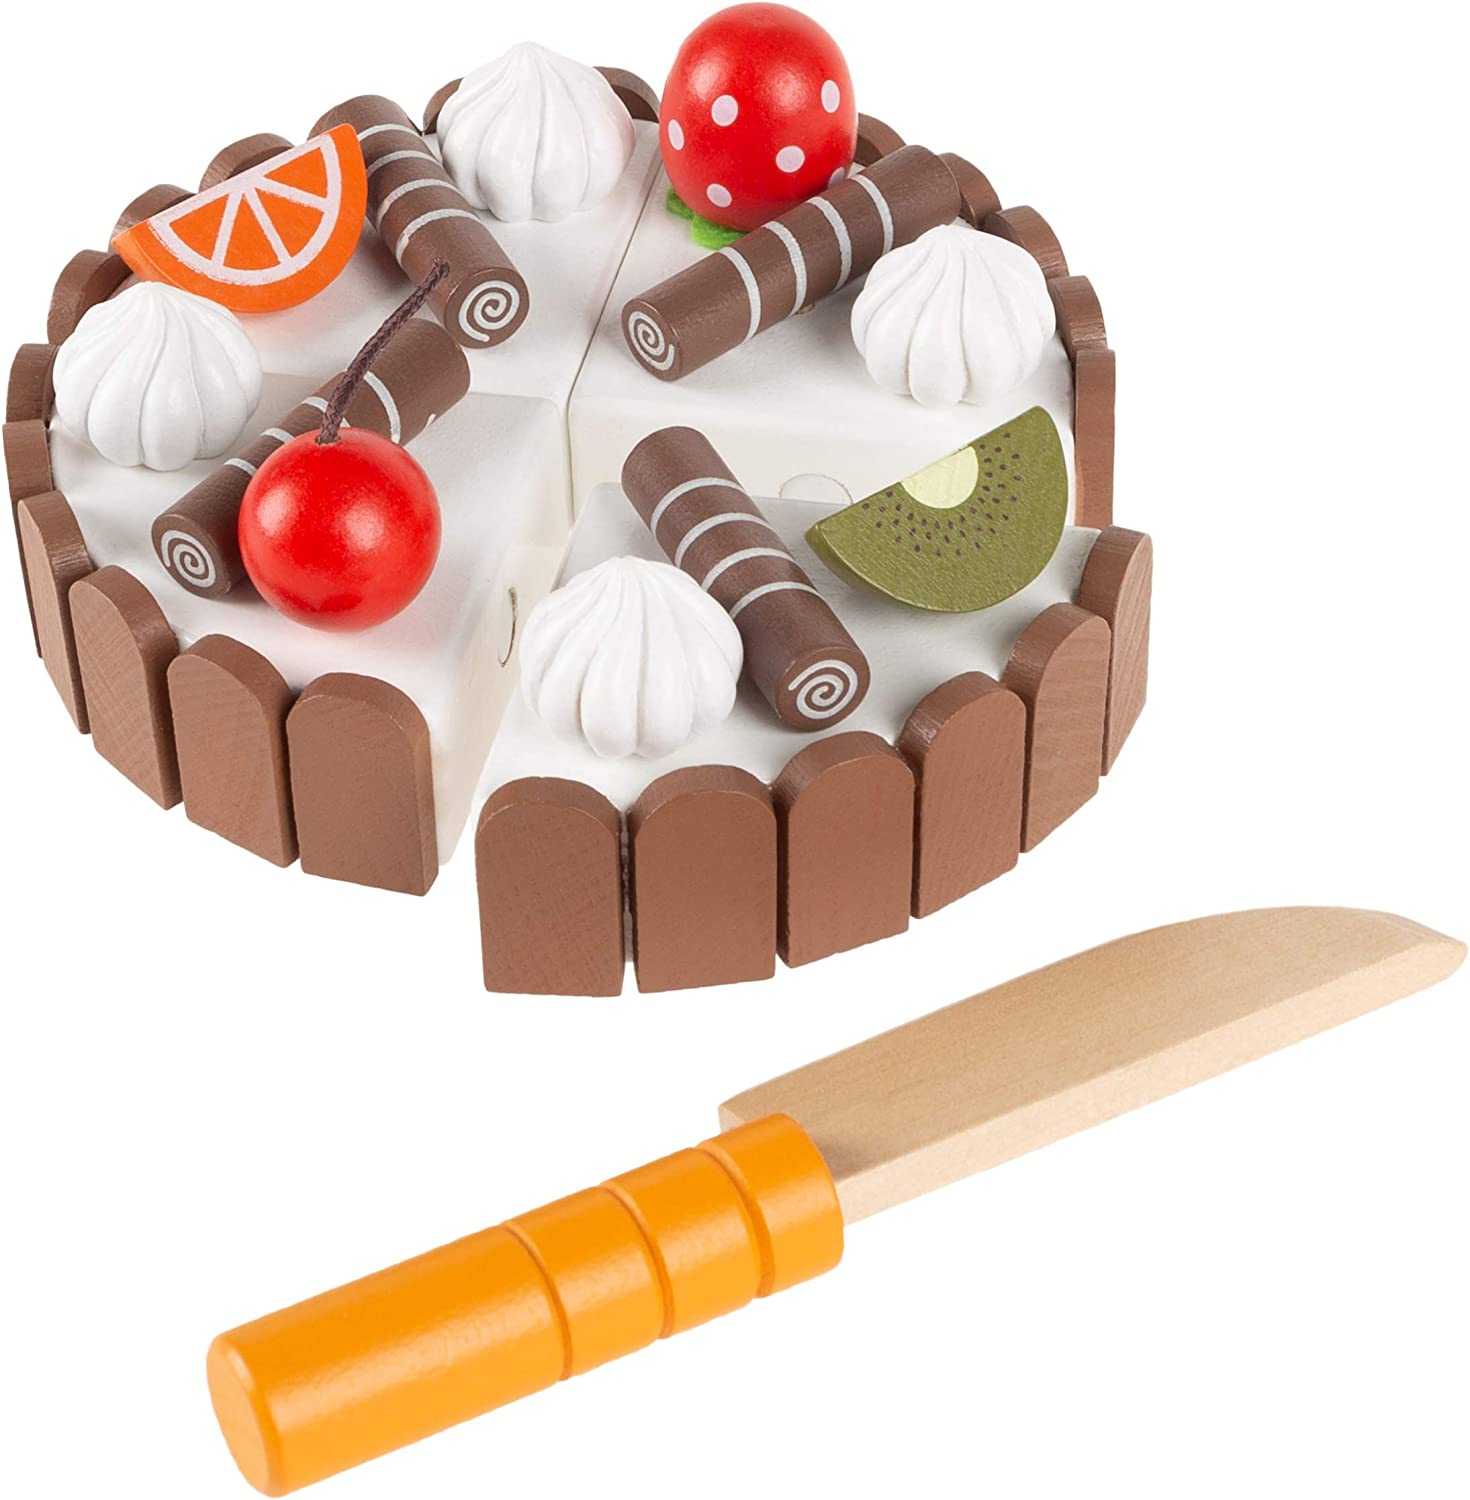 Wooden Magnet Chocolate Fruits Birthday Cake Kids Pretend Play Food Toy Fun